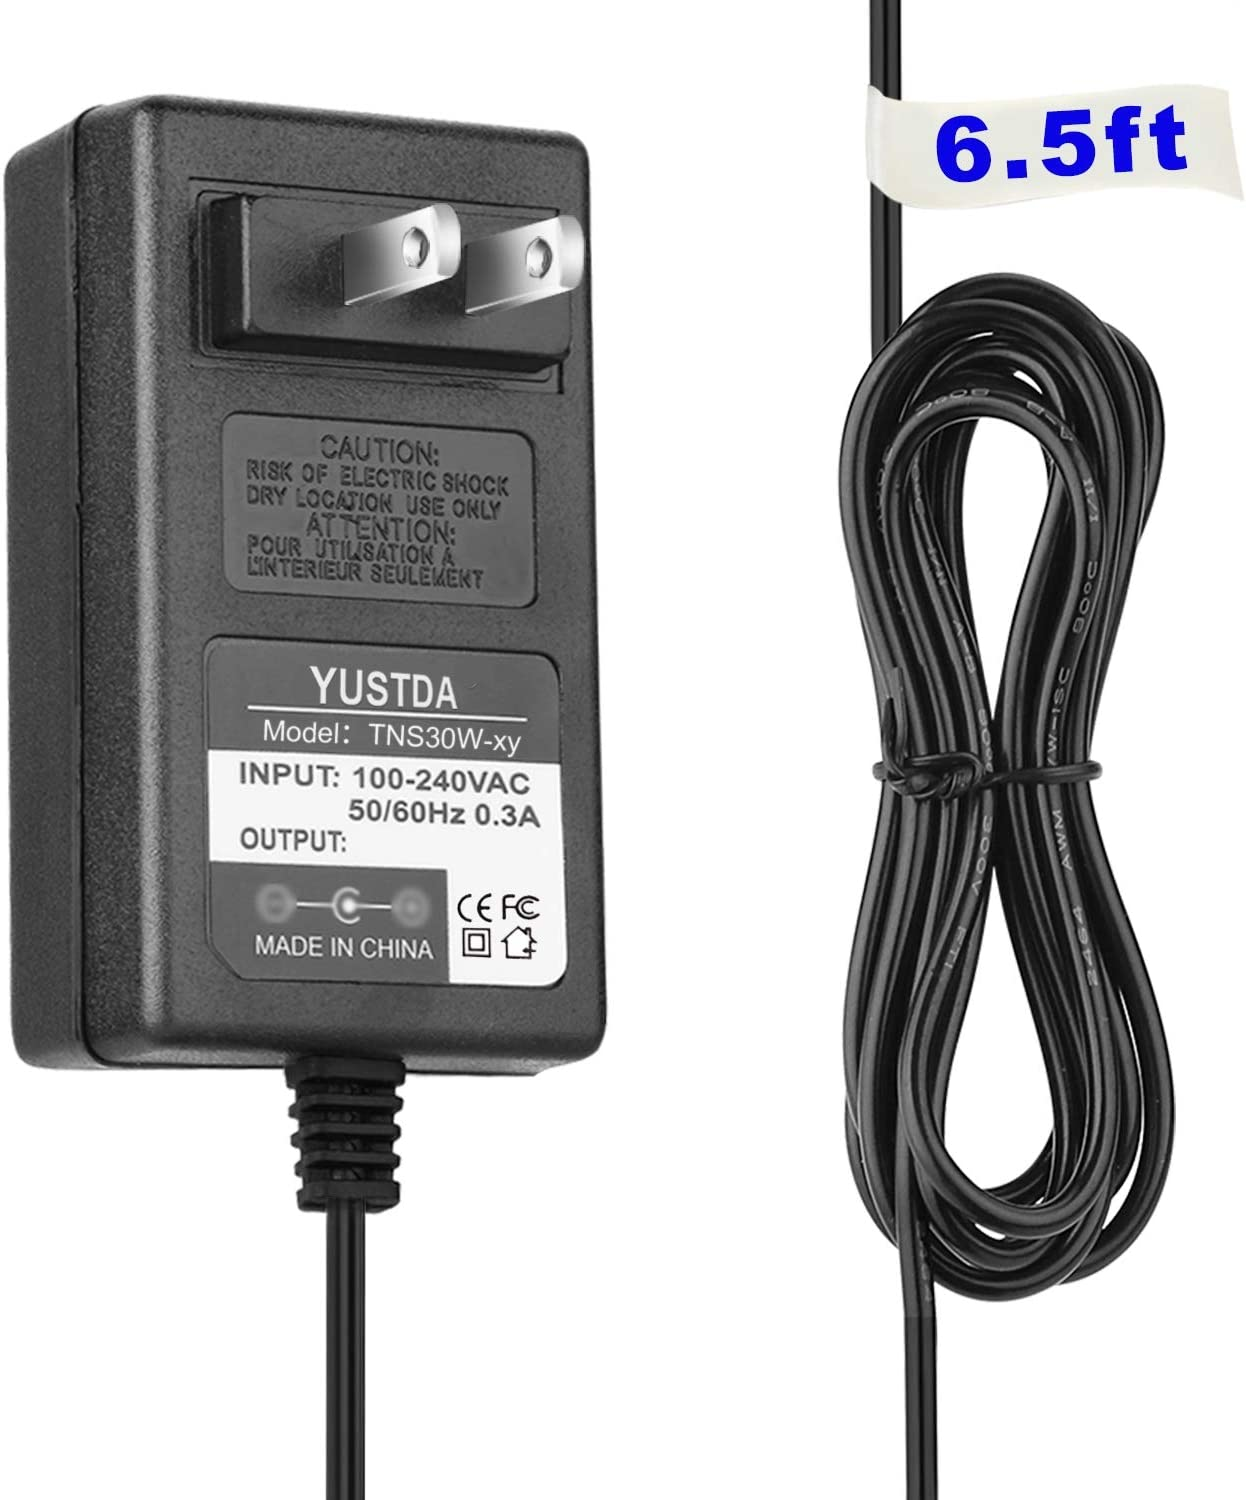 """Wall Charger for EVOO 11.6"""" EV-EL2in1-116-2 TEV-L2IN1-116-2-SL TEV-L2IN1-116-2 Convertible Touch Screen Laptop Elite Series Windows 10 32GB (AC Power Supply Adapter 6.5' Long Cord)"""